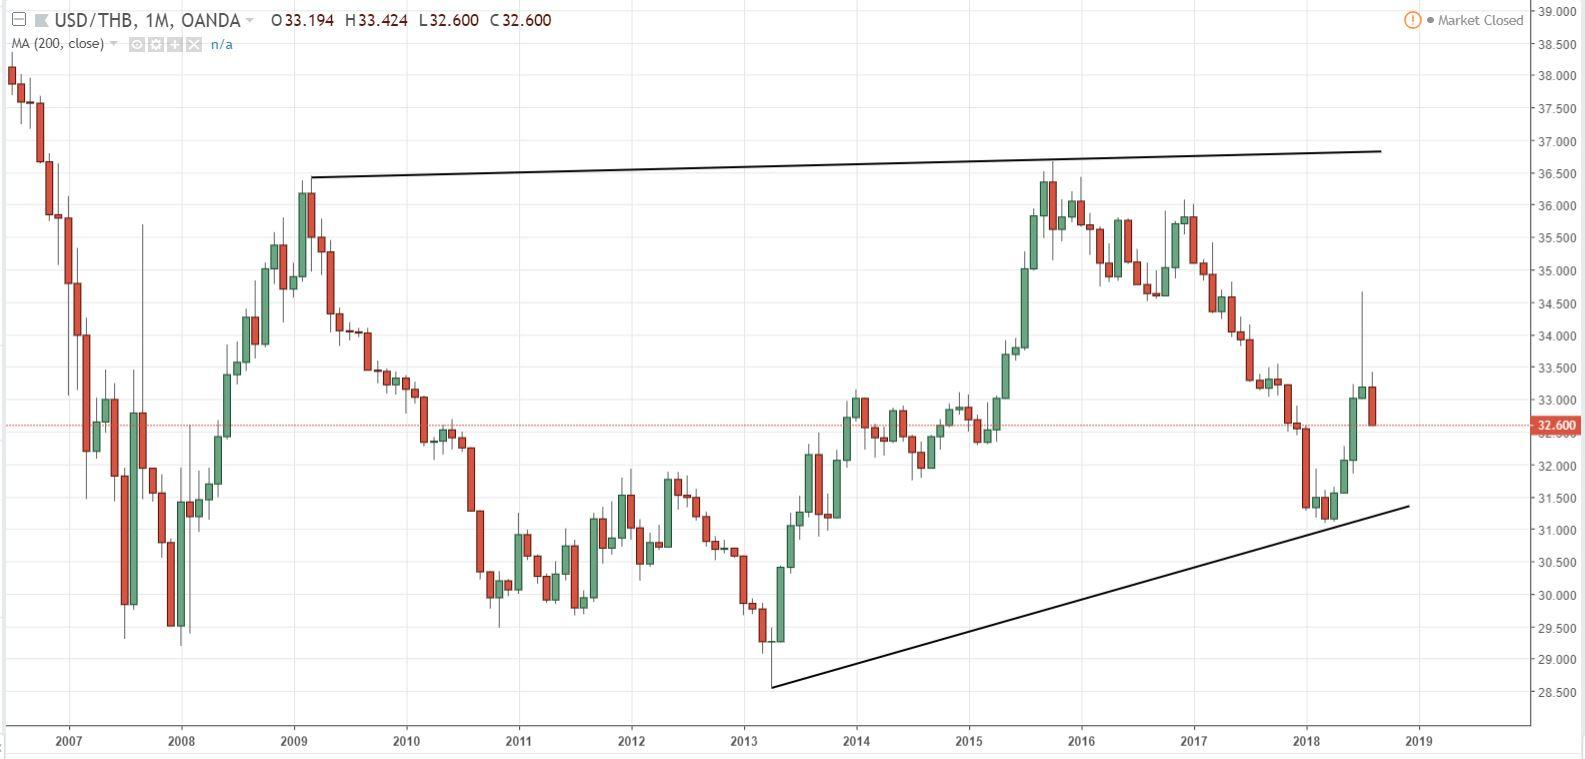 Thai Baht Strengthens. But This May Be Transient | Seeking Alpha